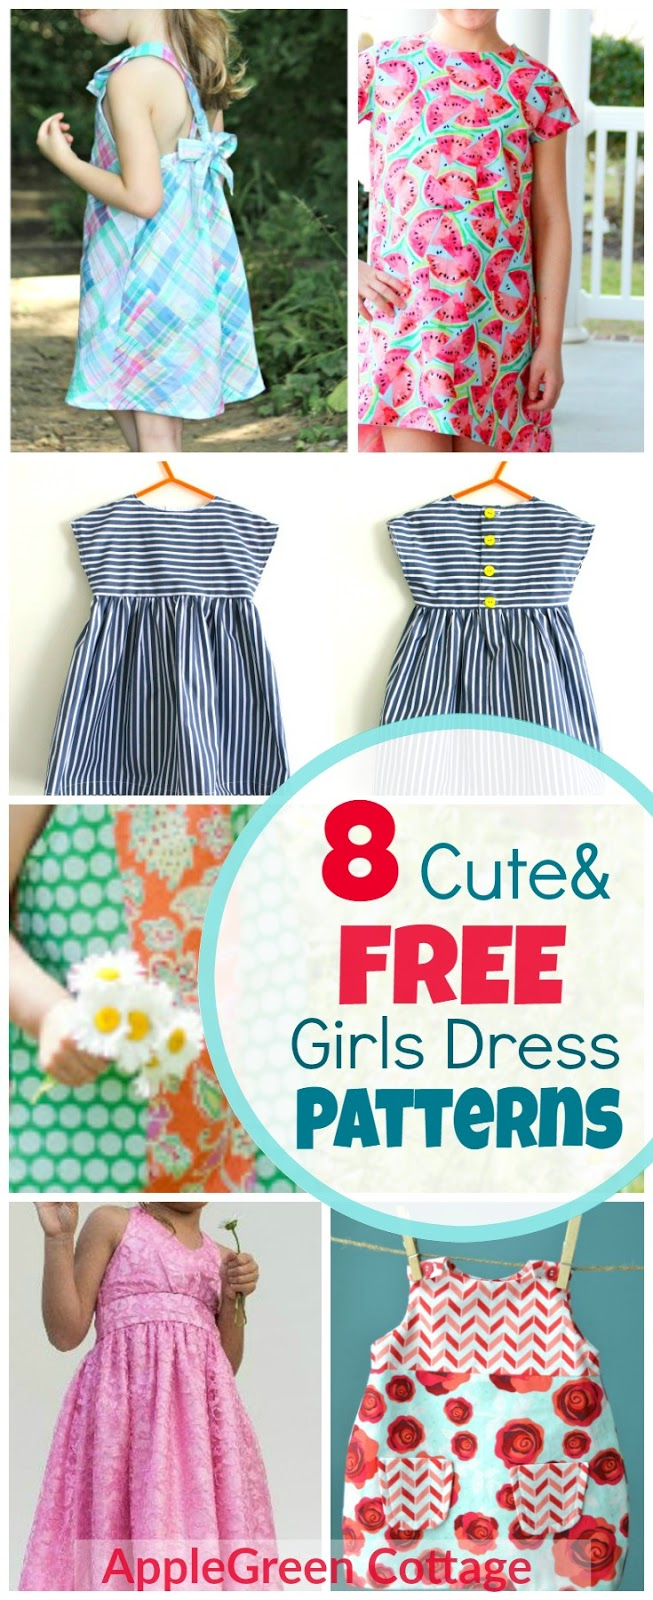 8 adorable free little girl dress patterns applegreen cottage 8 free patterns for cute girls dresses great beginner sewing projects because theres always jeuxipadfo Gallery